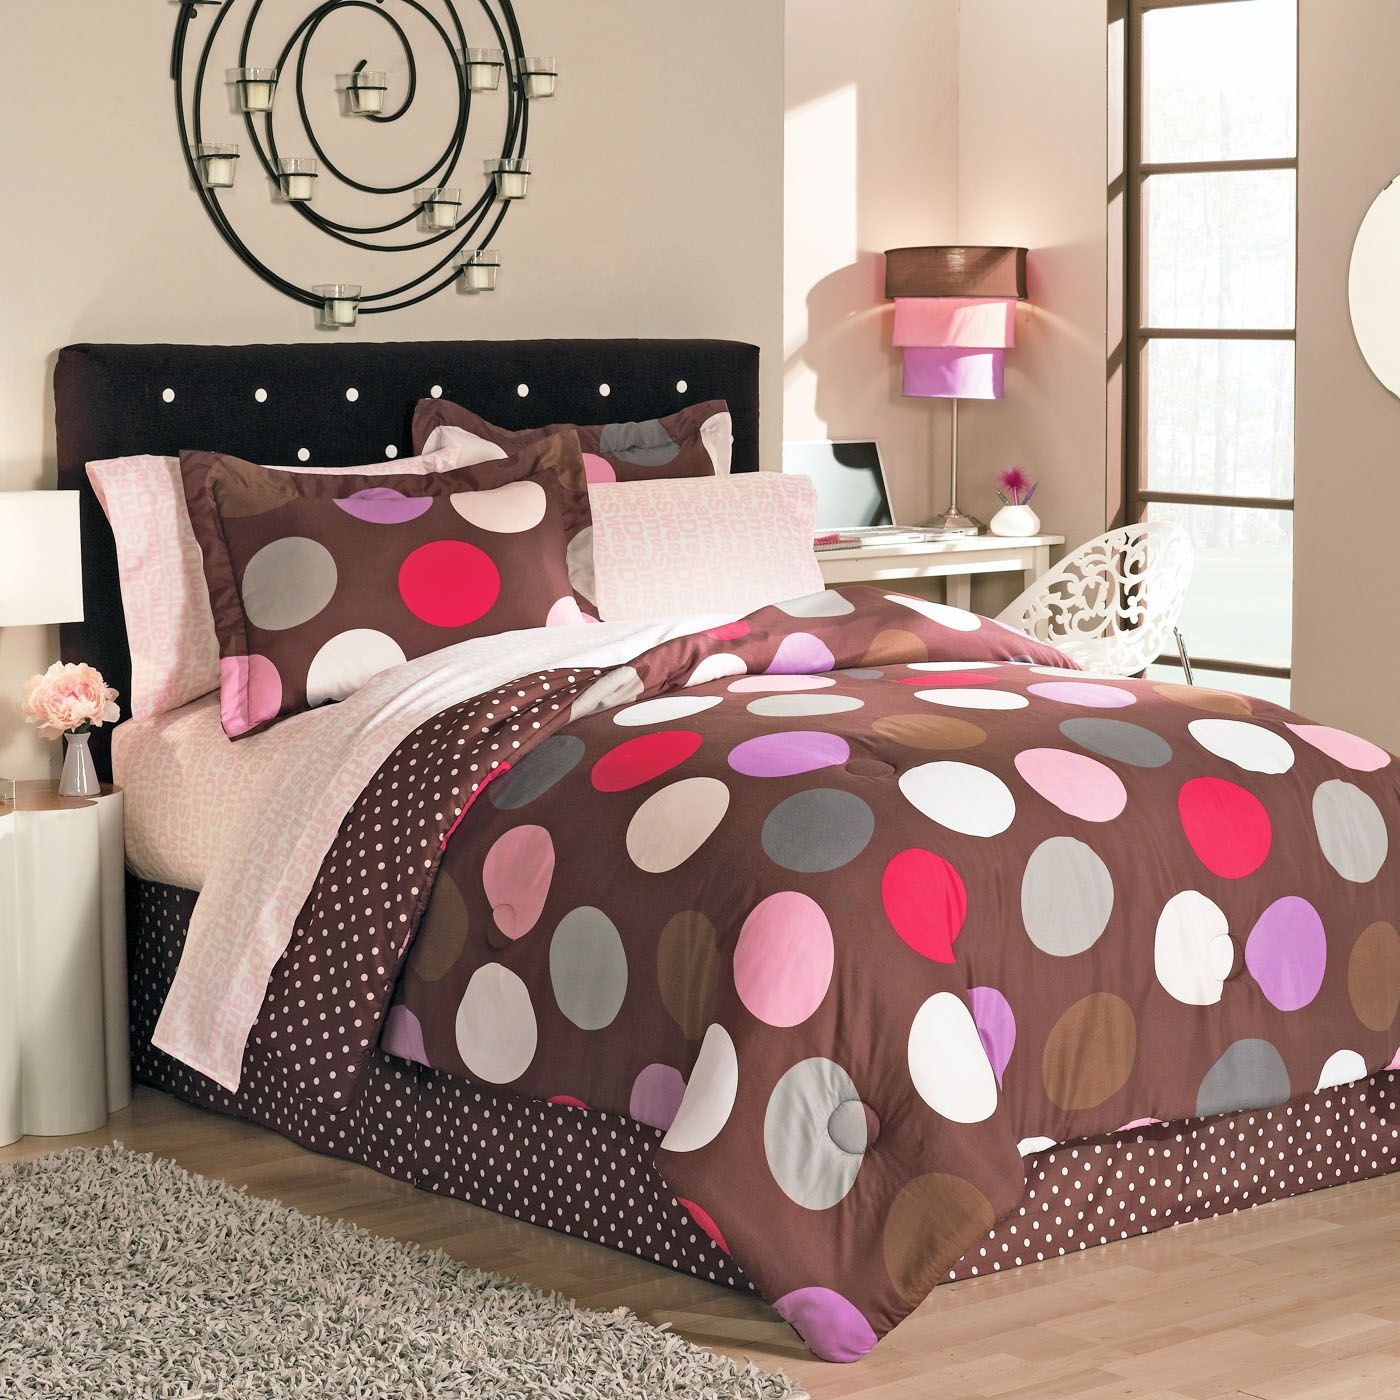 full queen of cute a comforters bag cheap bed sheets pretty king bedding clearance comforter size in sets